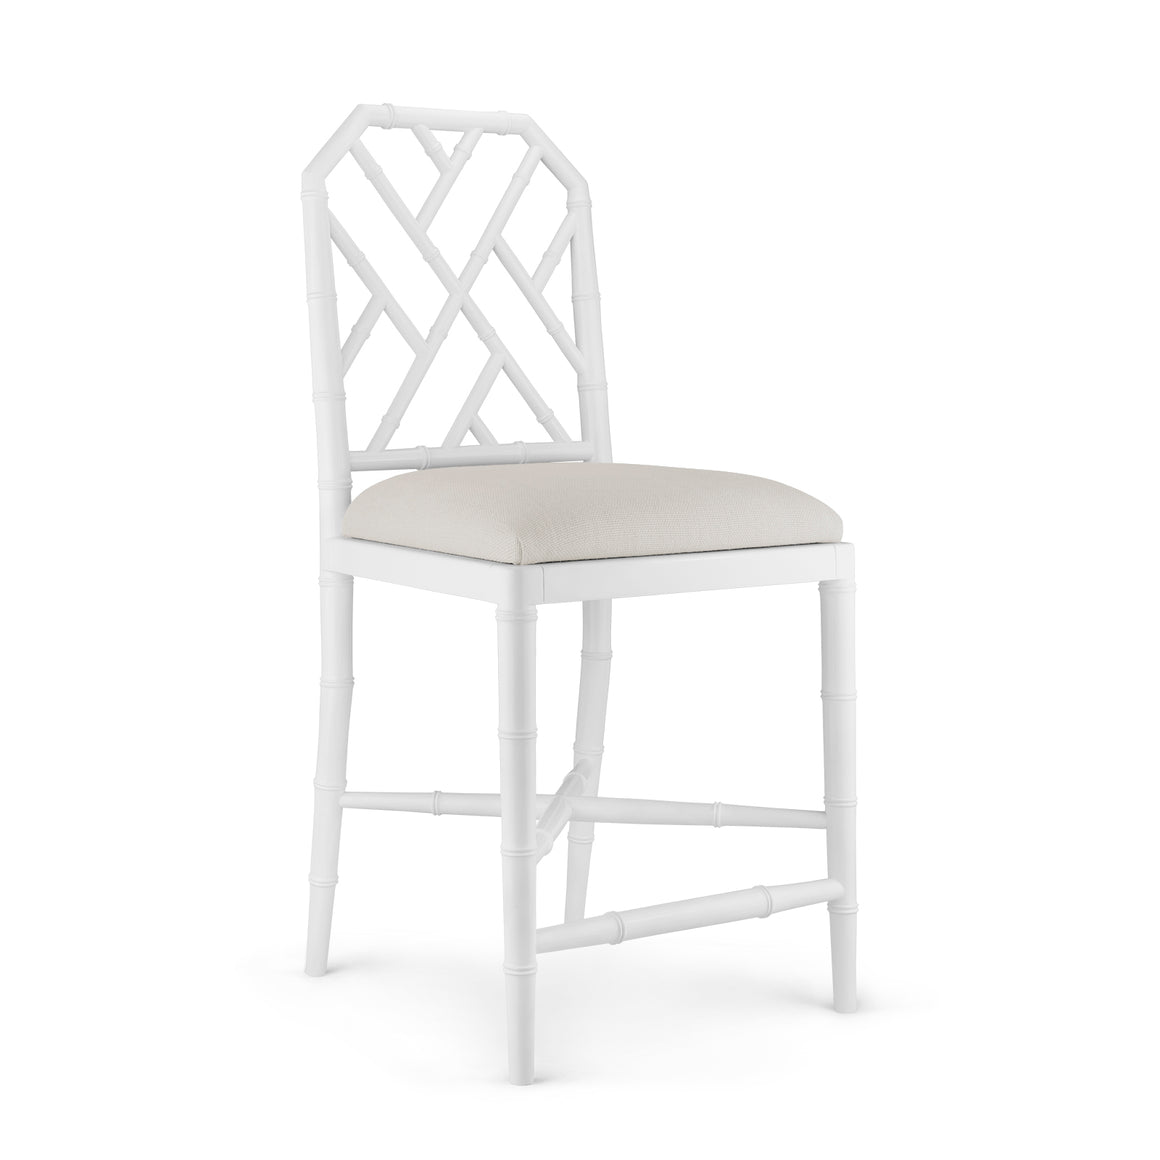 Bungalow 5 Jardin Counter Stool, White